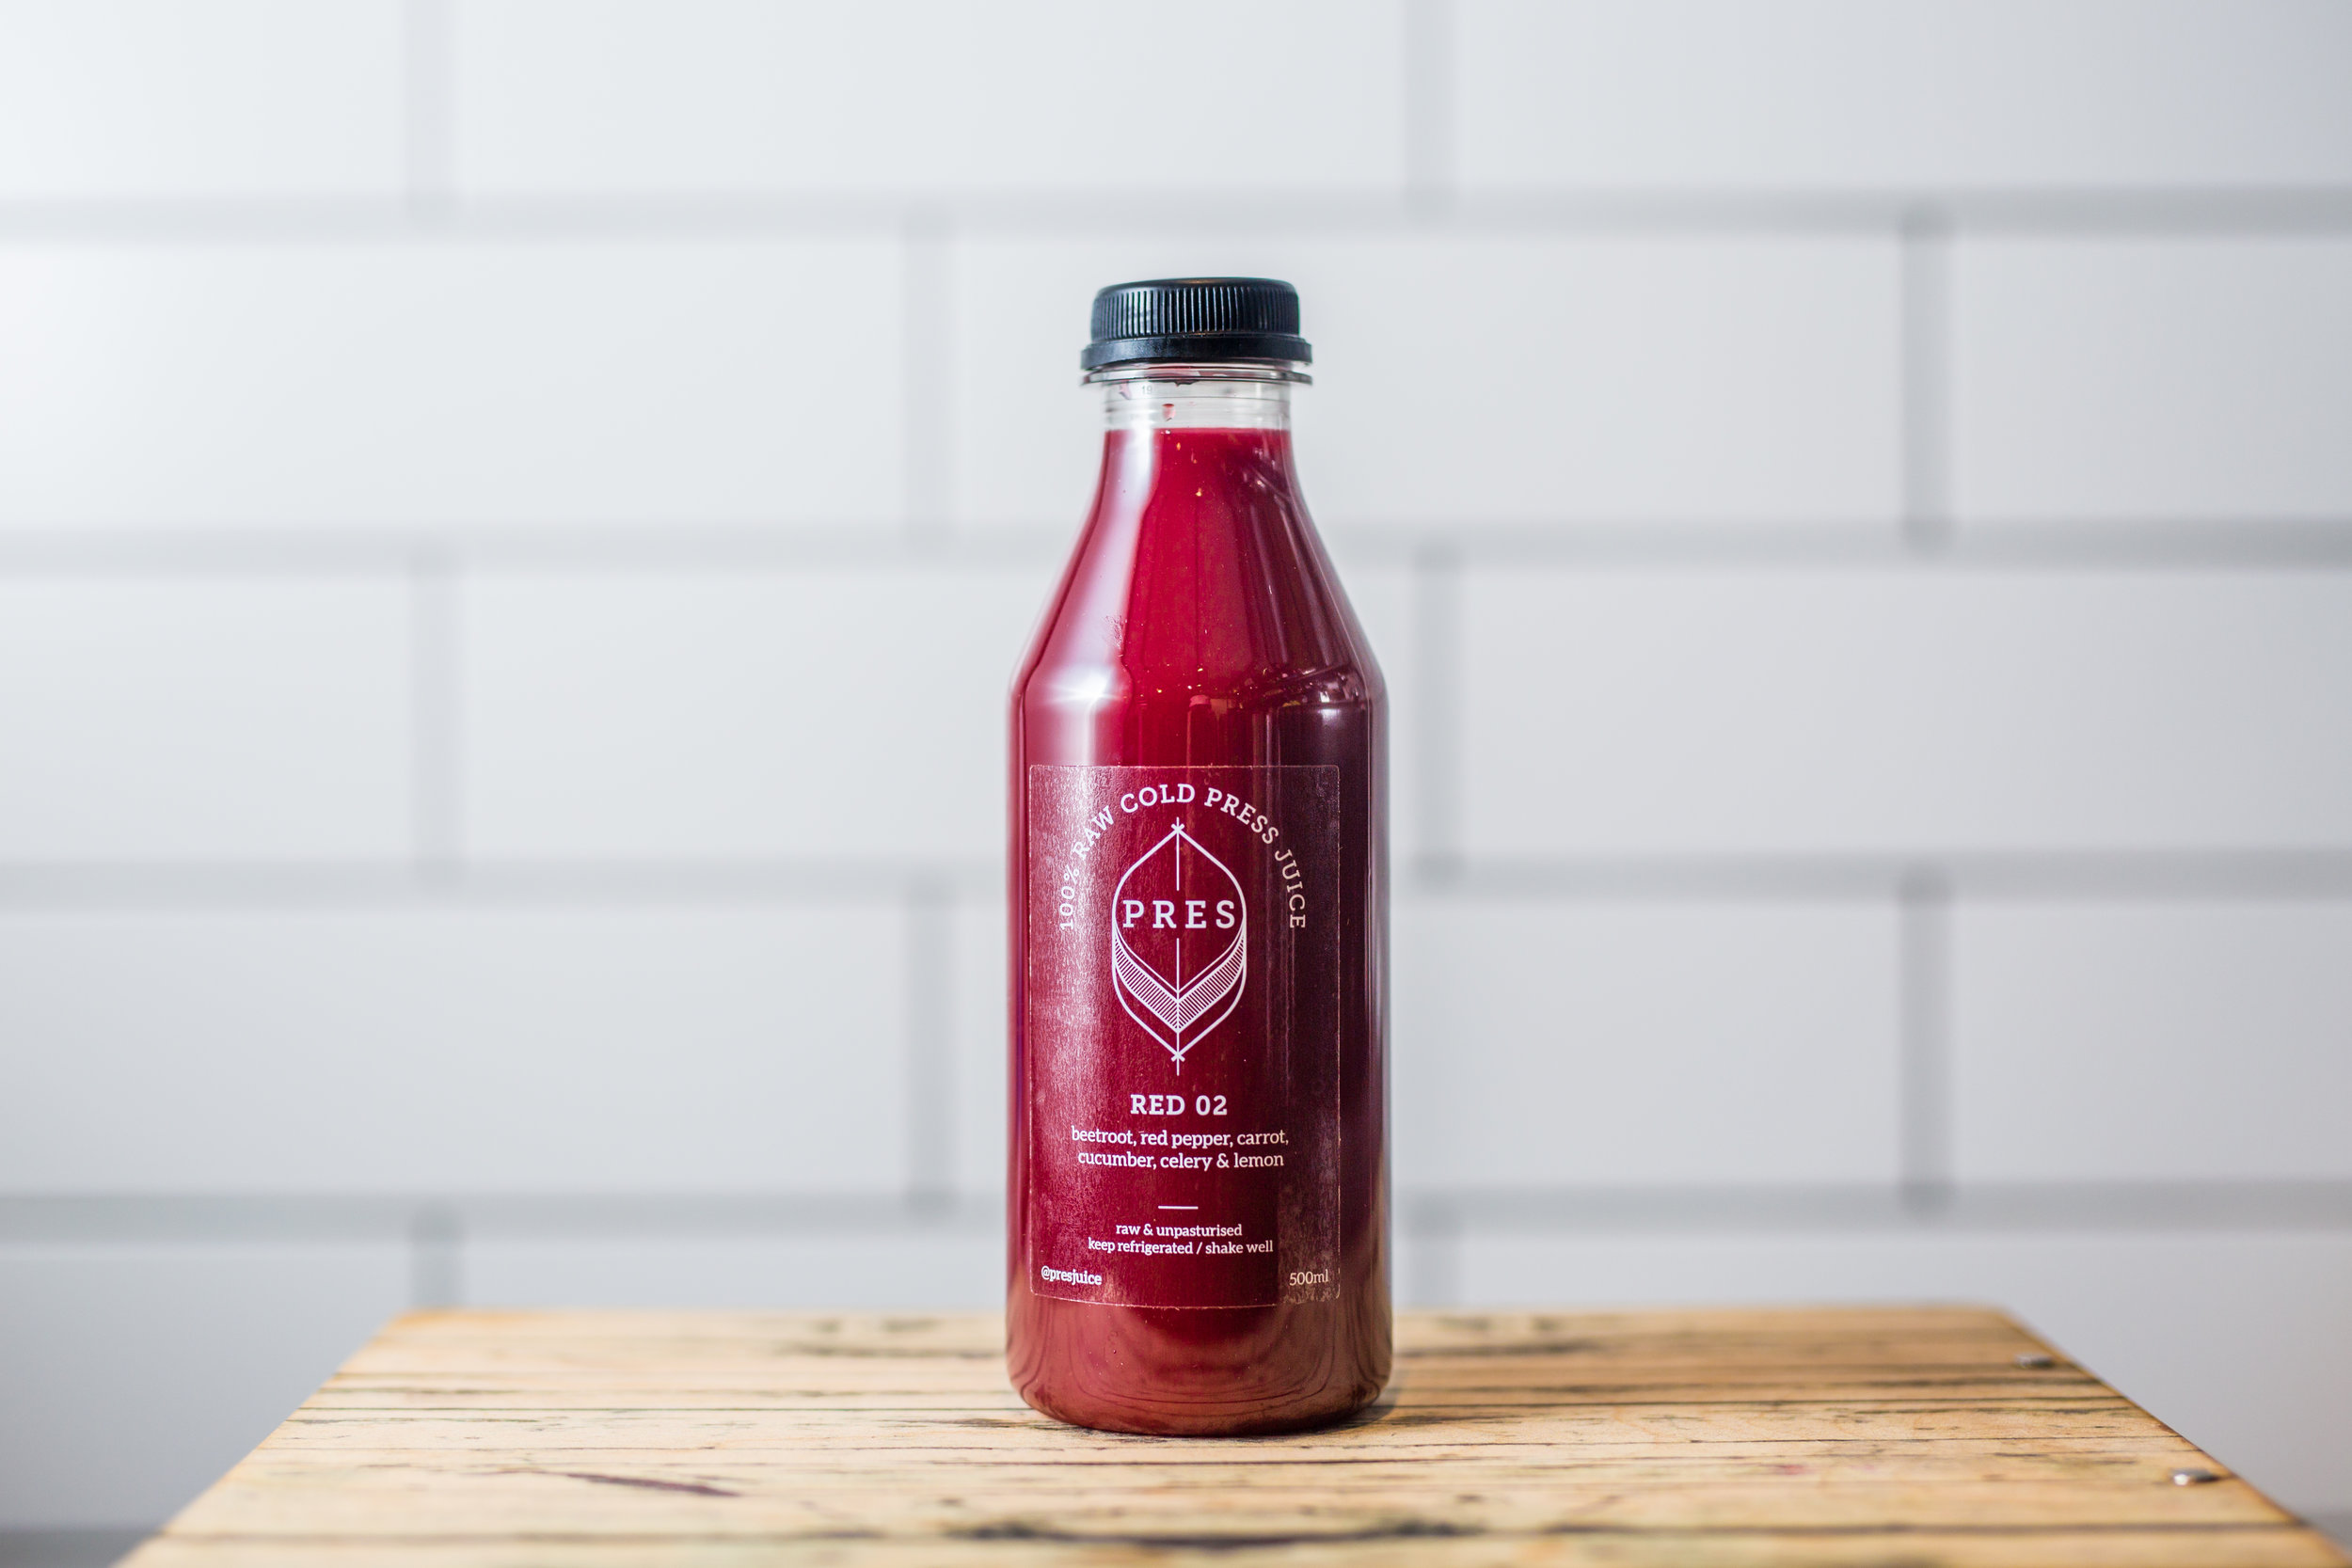 THE RED JUICES - RED ONE - Beetroot, Carrot, Apple, Cucumber, Celery, LemonRED TWO - Beetroot, Red Pepper, Carrot, Cucumber, Celery, Lemon